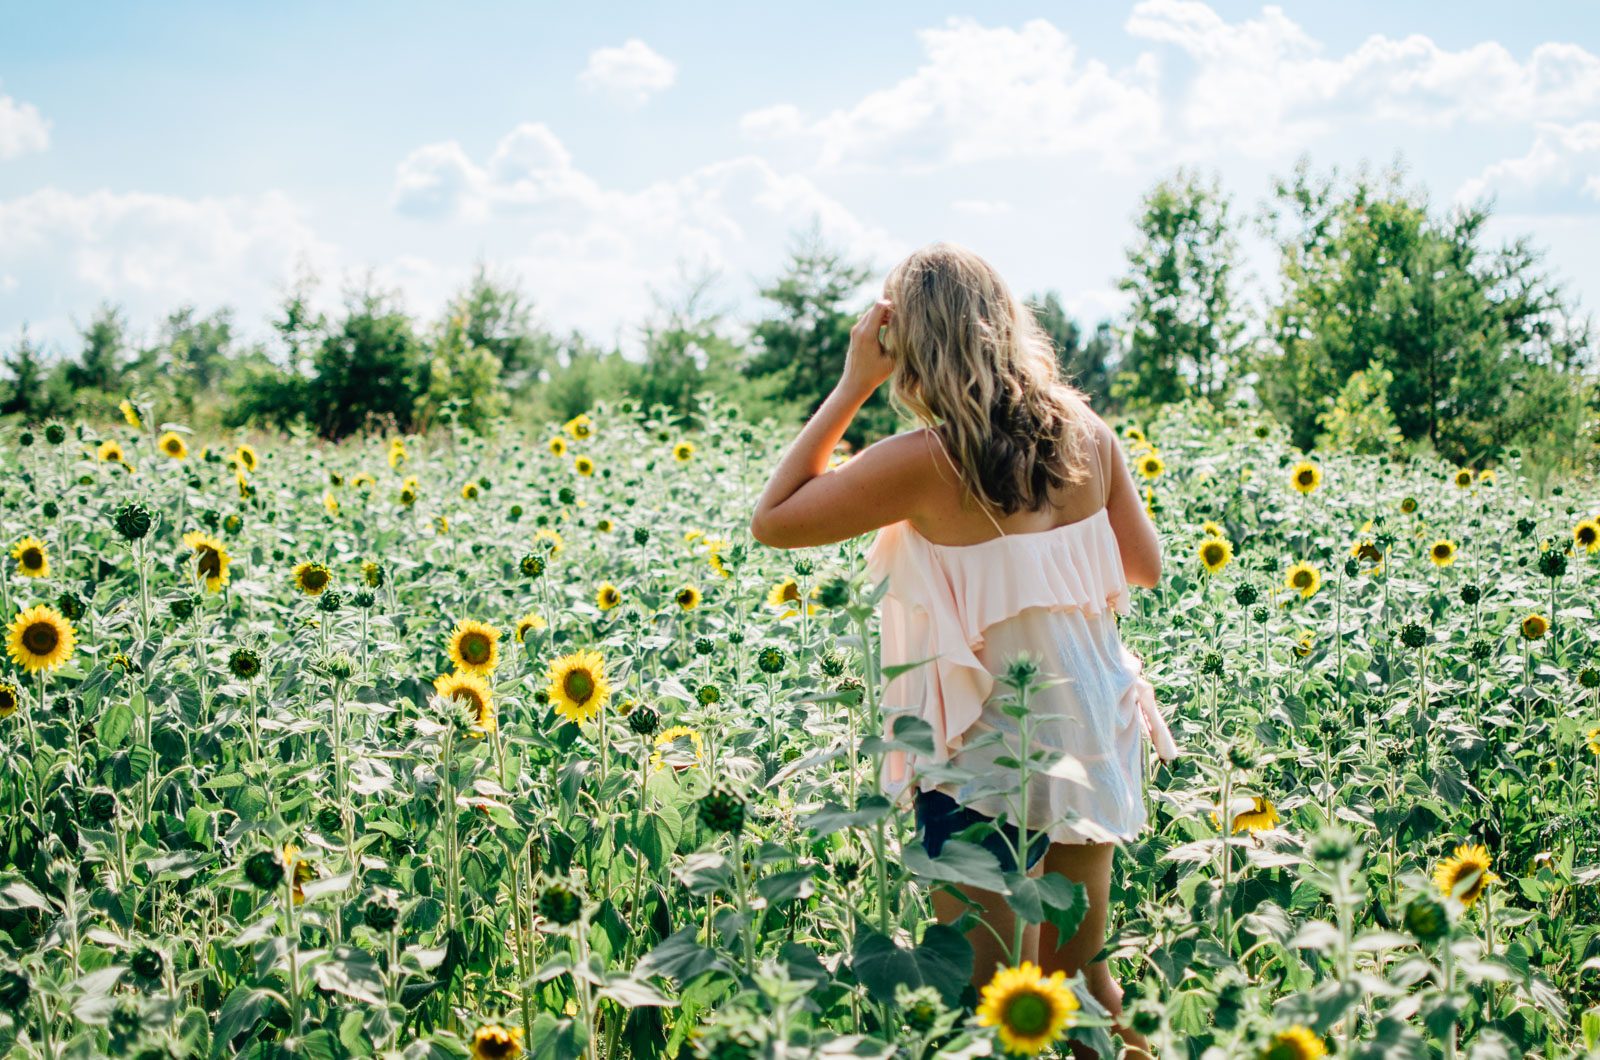 boho summer style - sunflower picking | For more cute summer outfits, head to bylaurenm.com